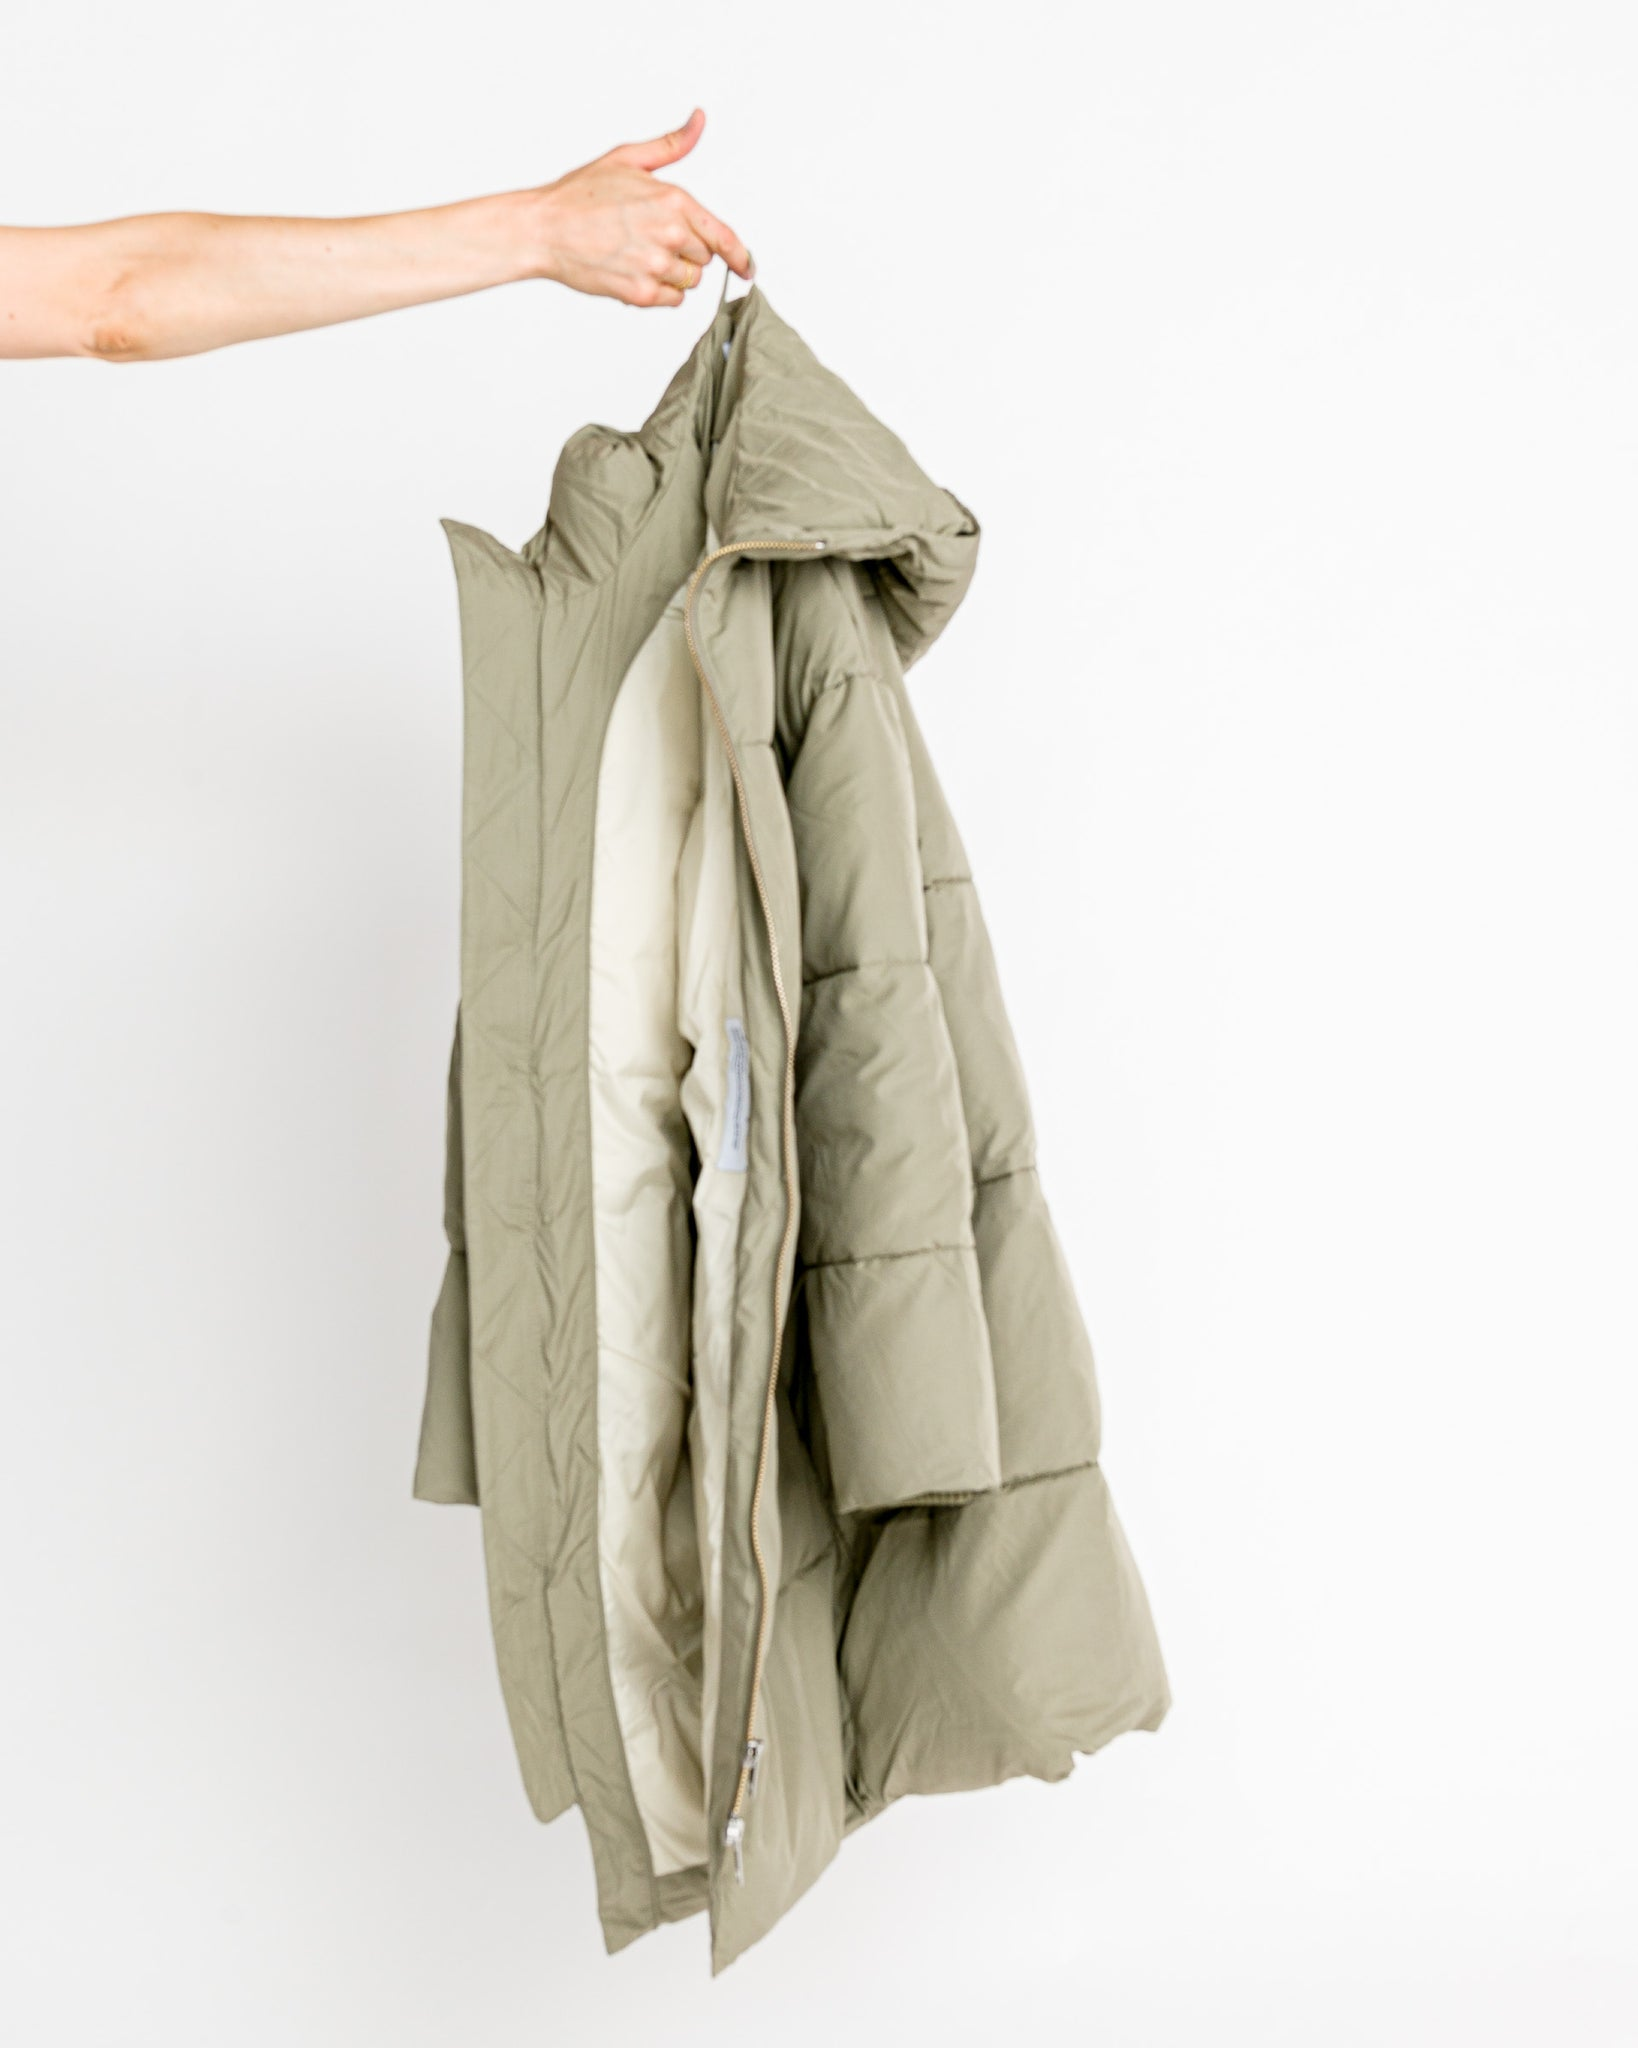 Embassy Of Bricks And Logs // Vegane Winterjacke Elphin Pale Olive